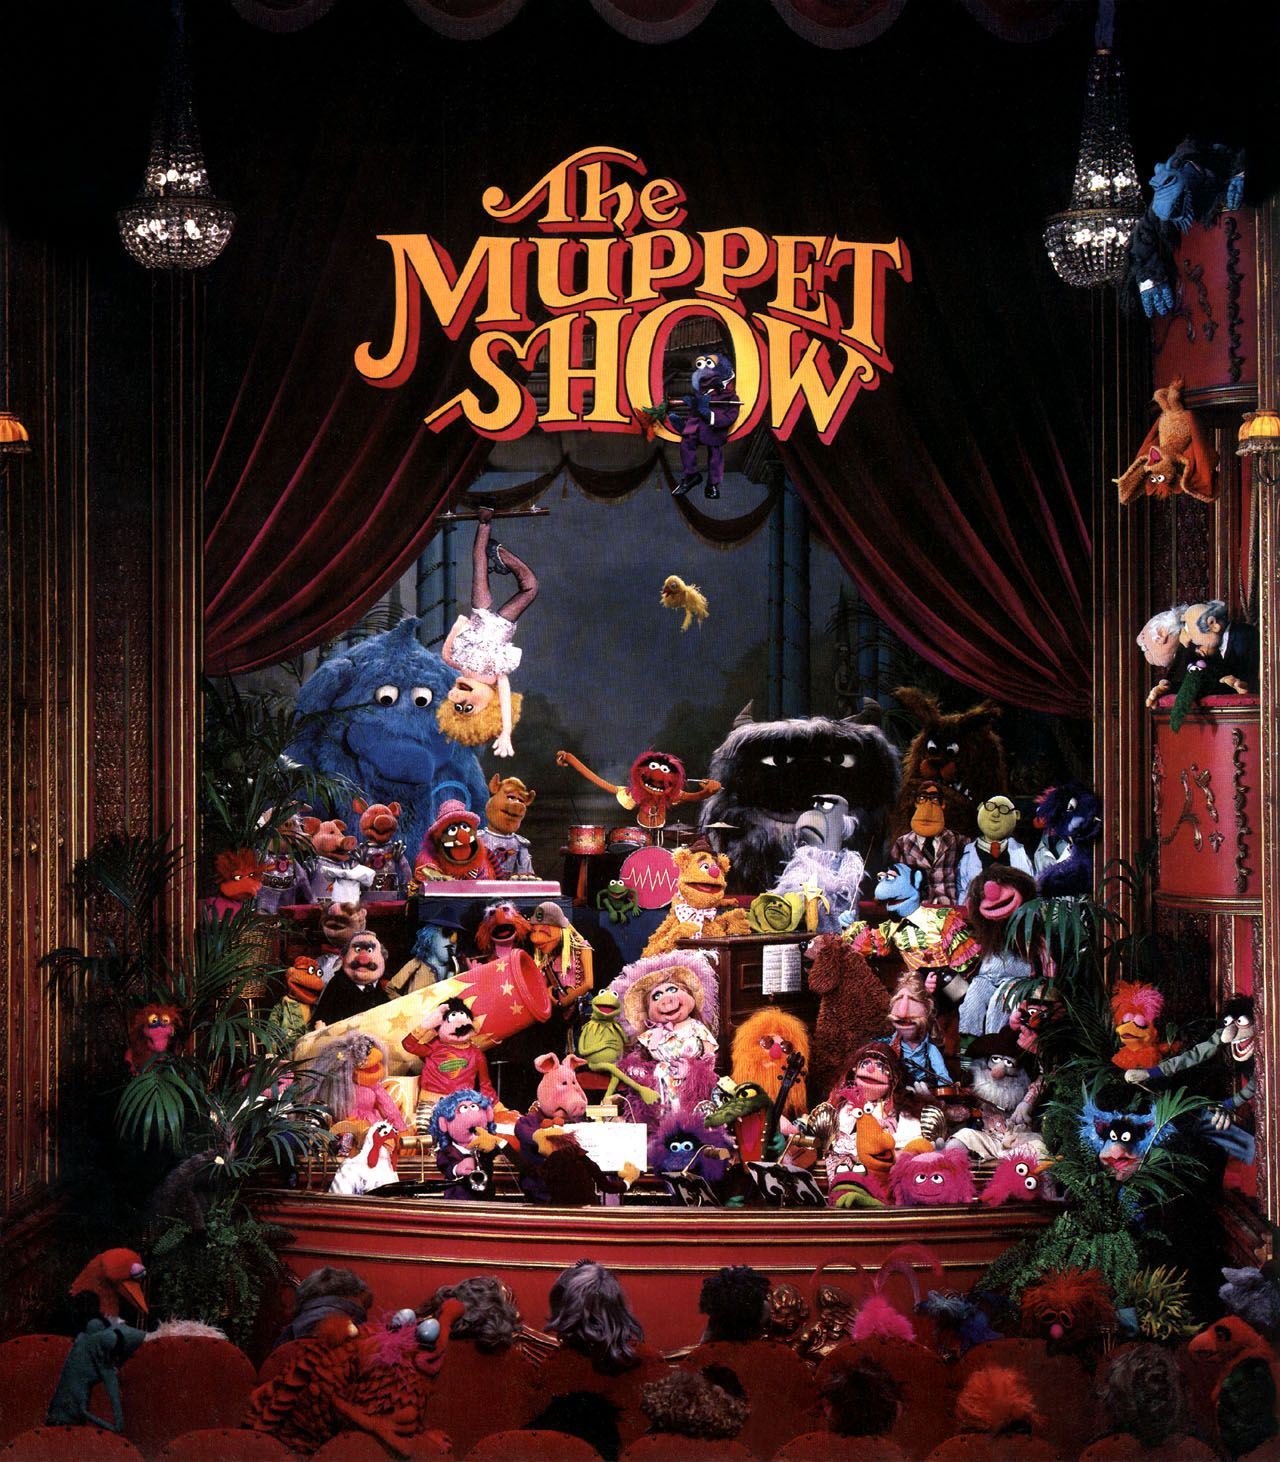 an analysis of the muppet show play Theme song: it's time to play the music it's time to light the lights it's time to meet the muppets on the muppet show tonight it's time to put on makeup it's time to dress up right it's time to.